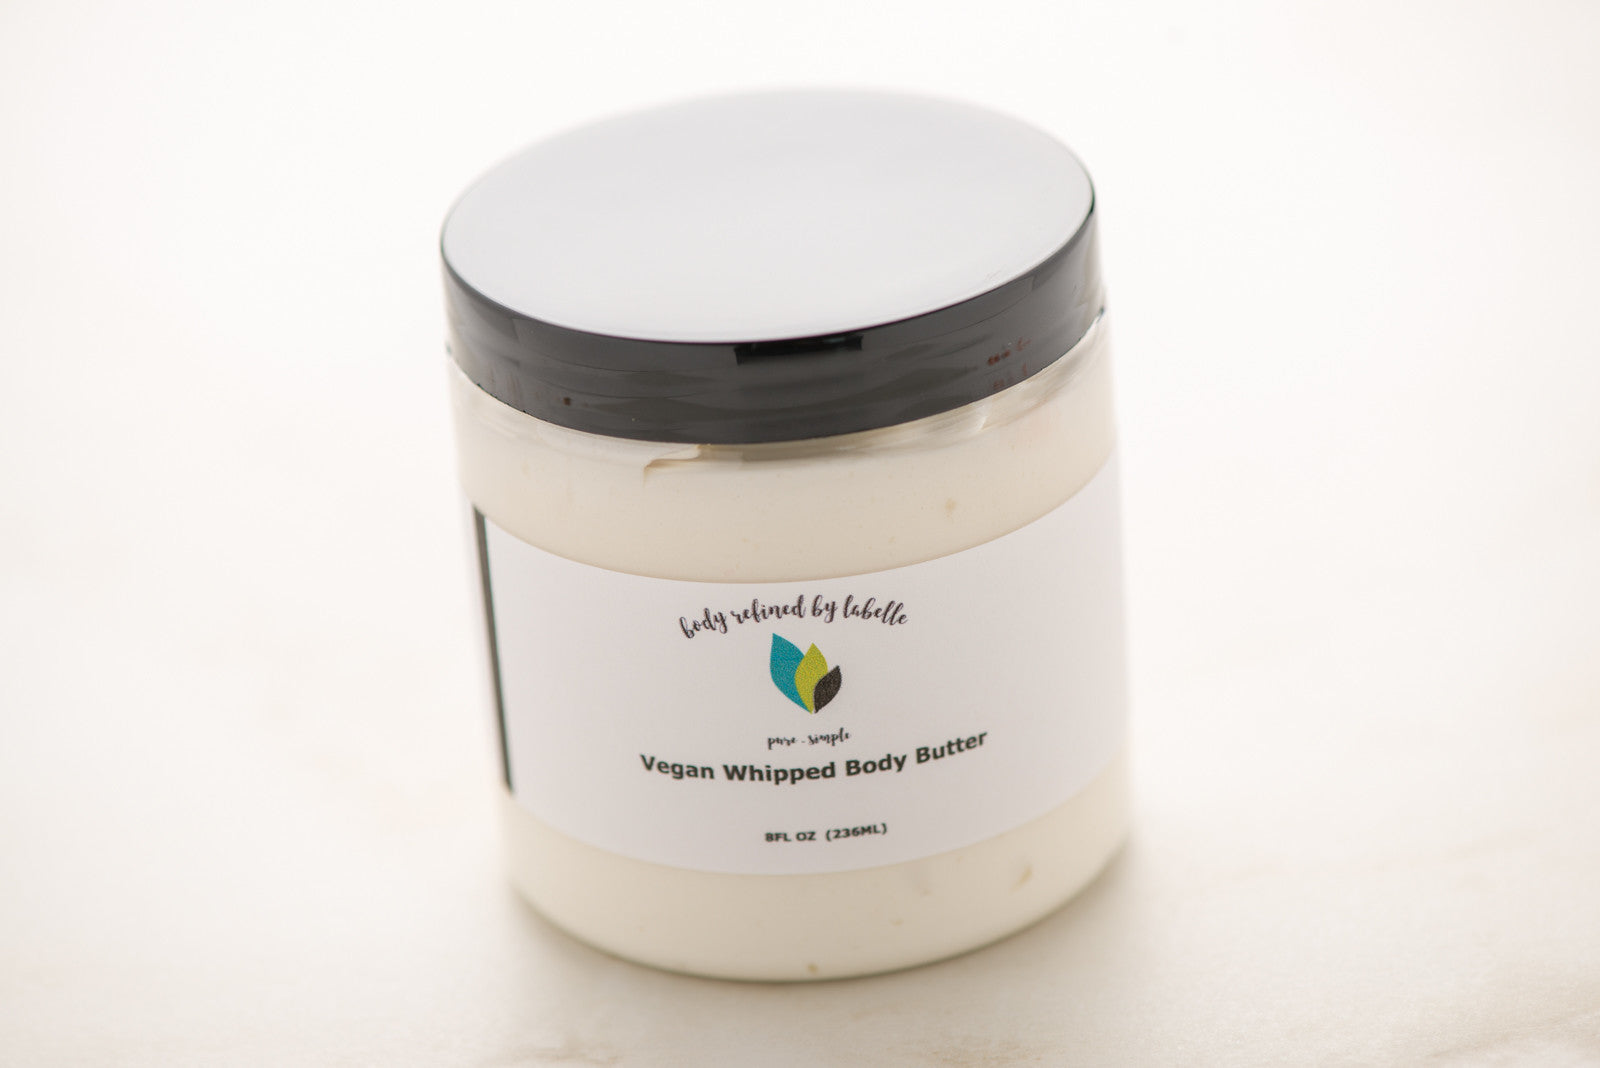 Whipped Body Butter | Vegan |8oz